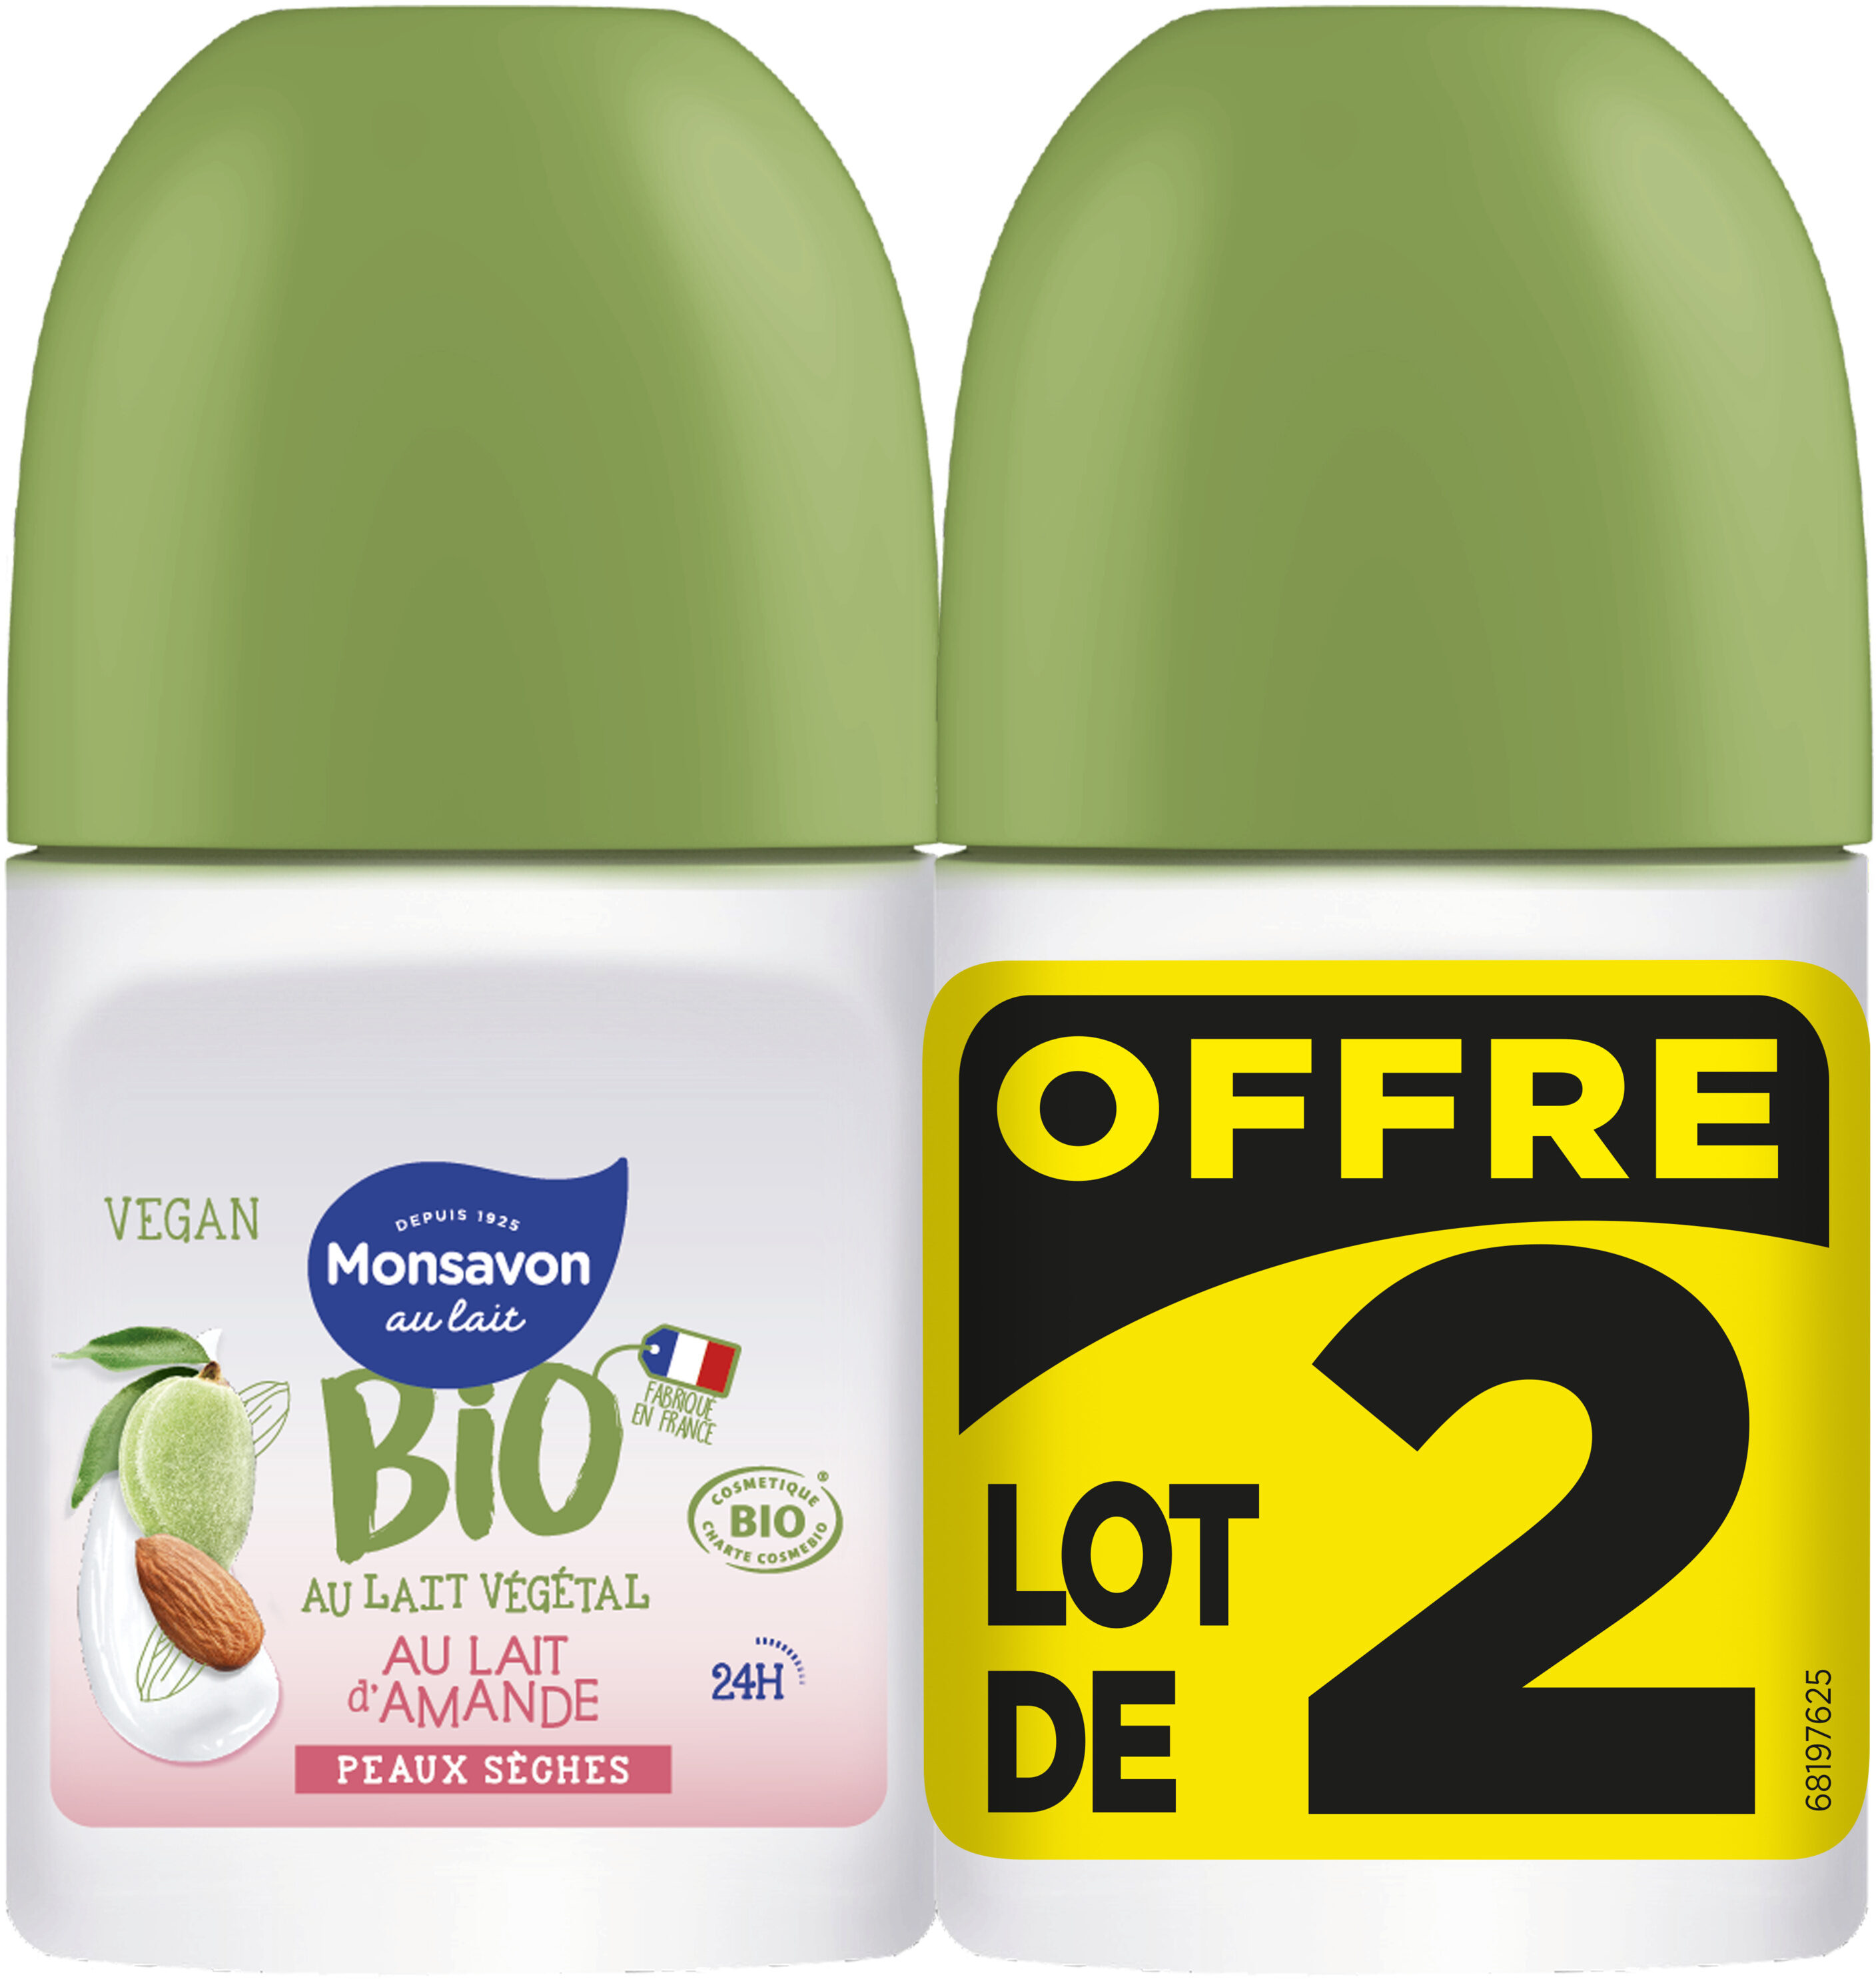 Monsavon Bio Déodorant Bille Lait Amande Lot 2x50ml - Produit - fr